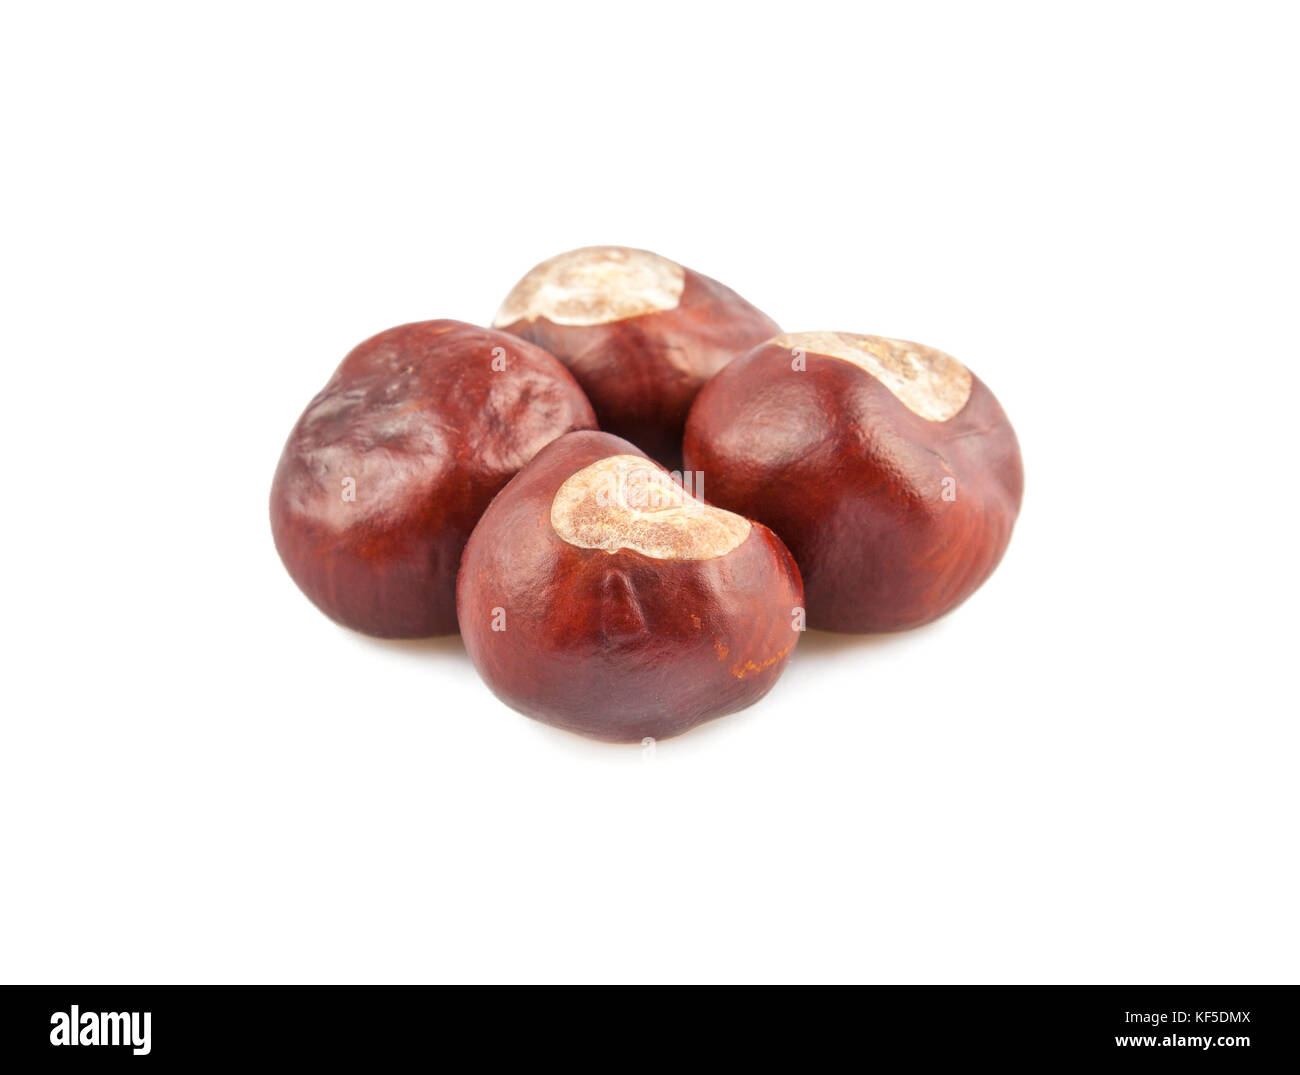 Group of chestnuts on white - Stock Image